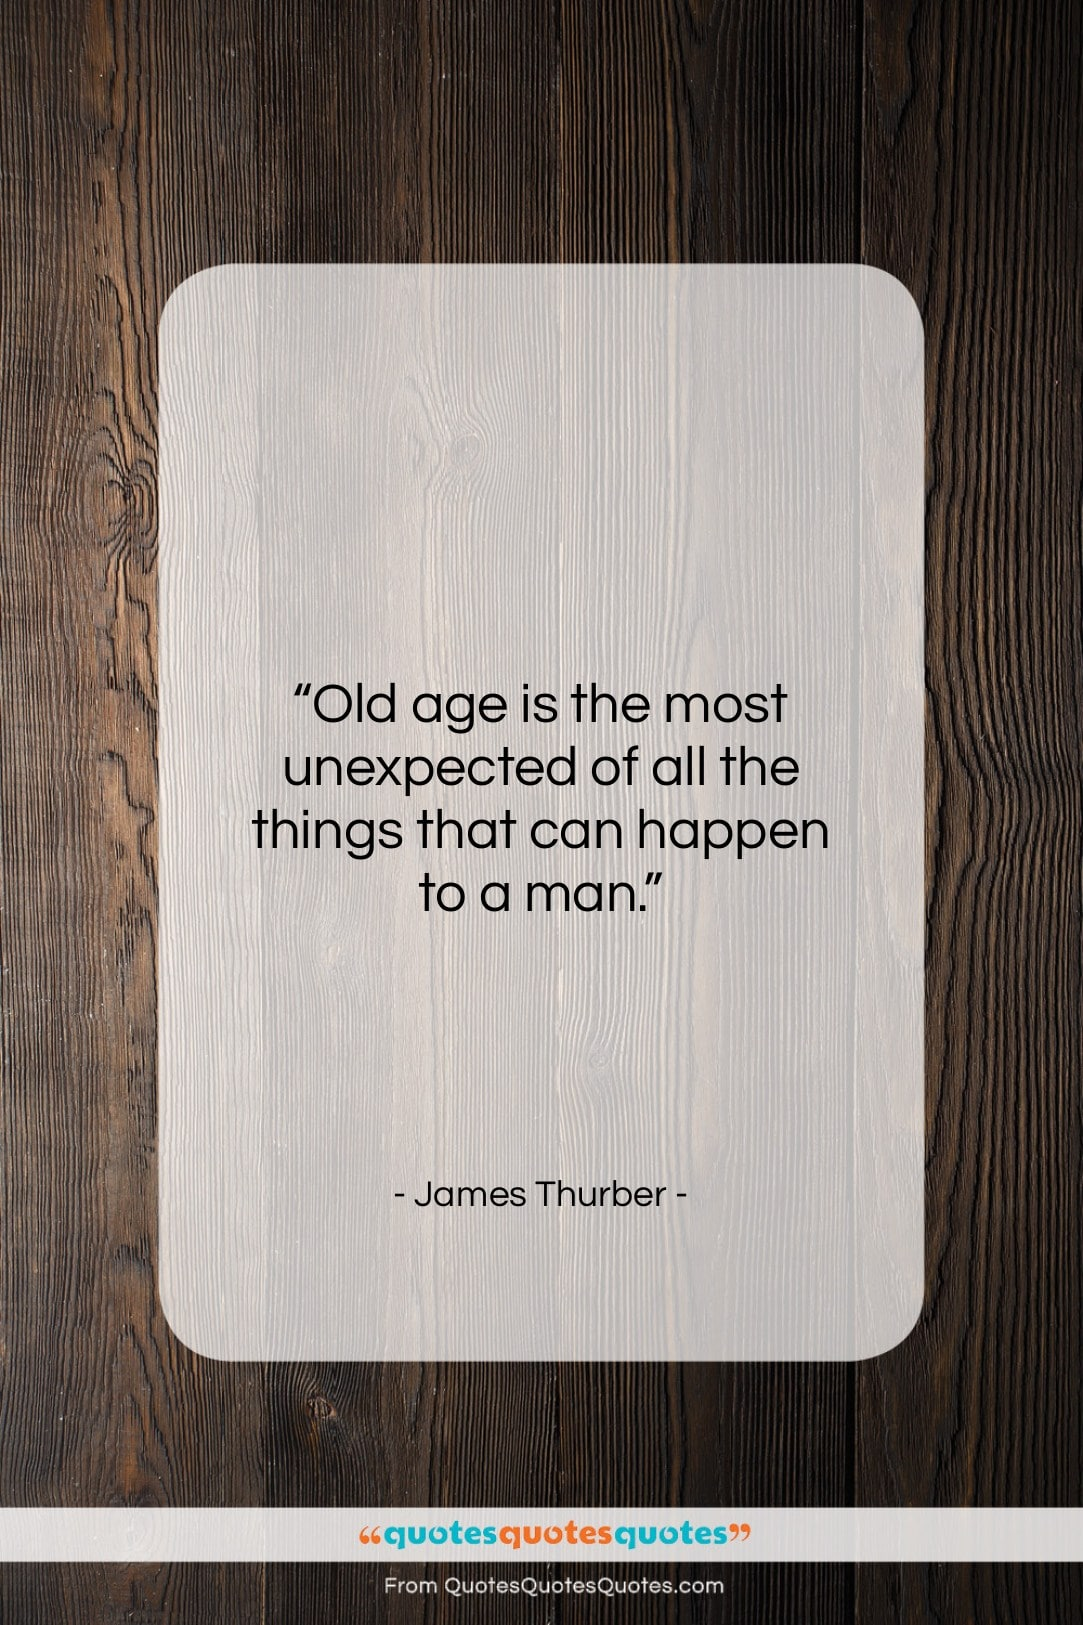 """James Thurber quote: """"Old age is the most unexpected of…""""- at QuotesQuotesQuotes.com"""